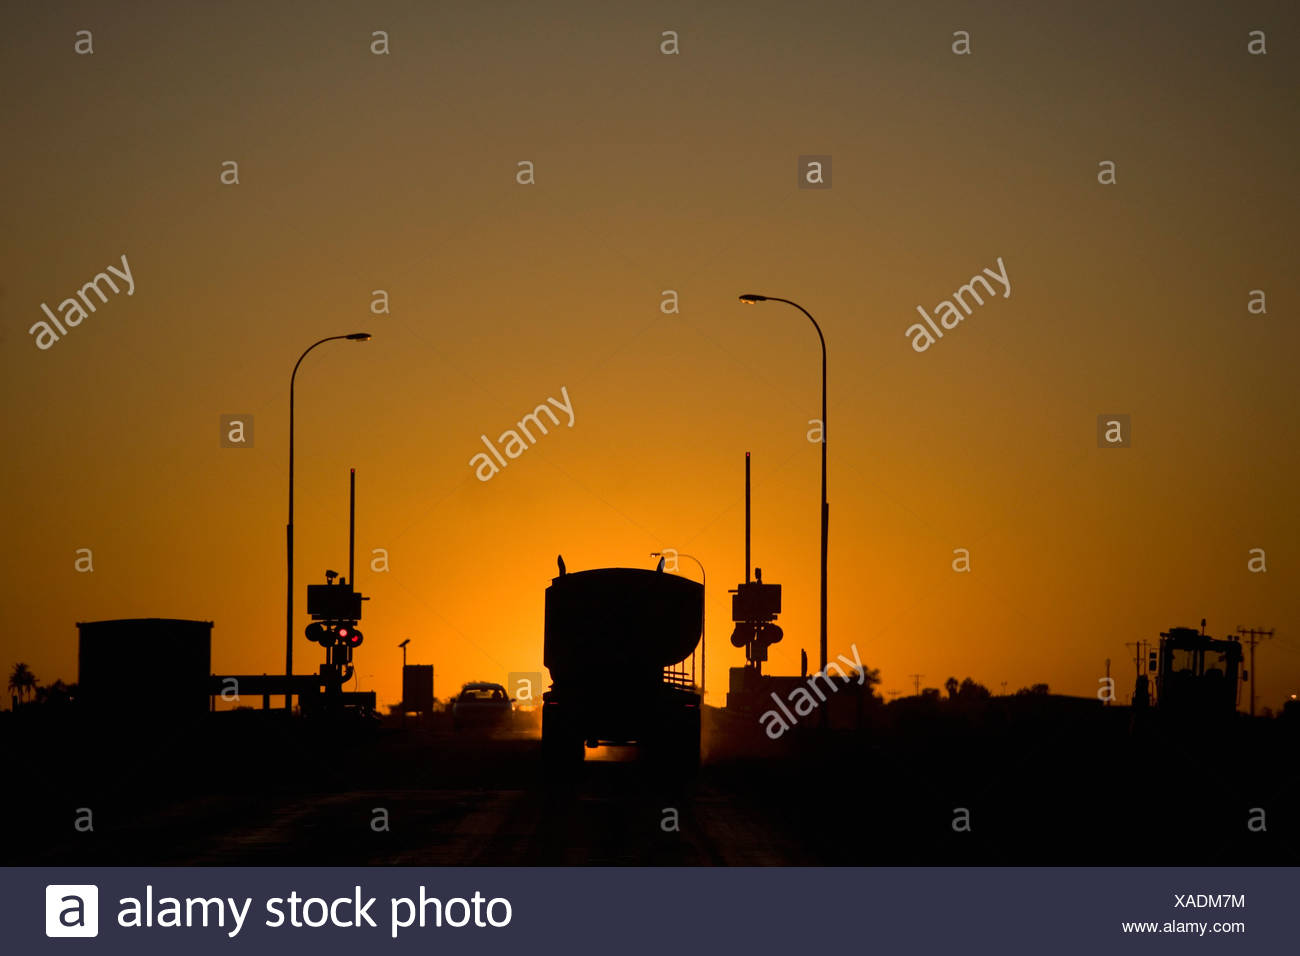 A freight truck and car stopped at a railroad crossing silhouetted against the setting sun - Stock Image